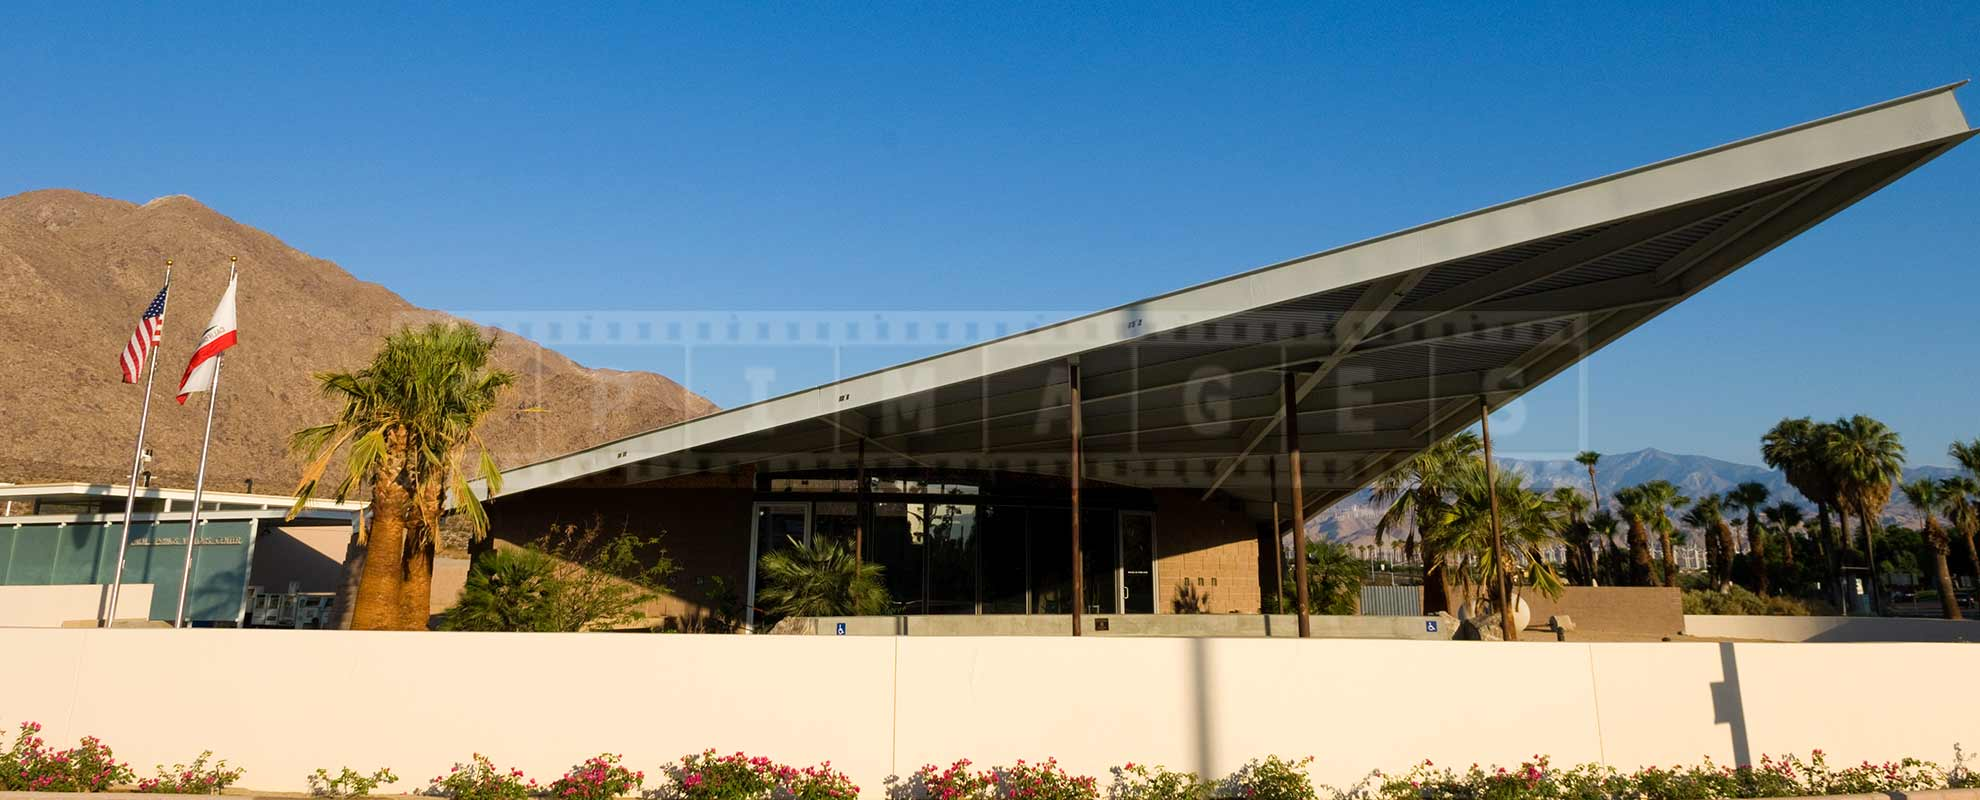 roof line of Palm Springs visitor centre by Albert Frey